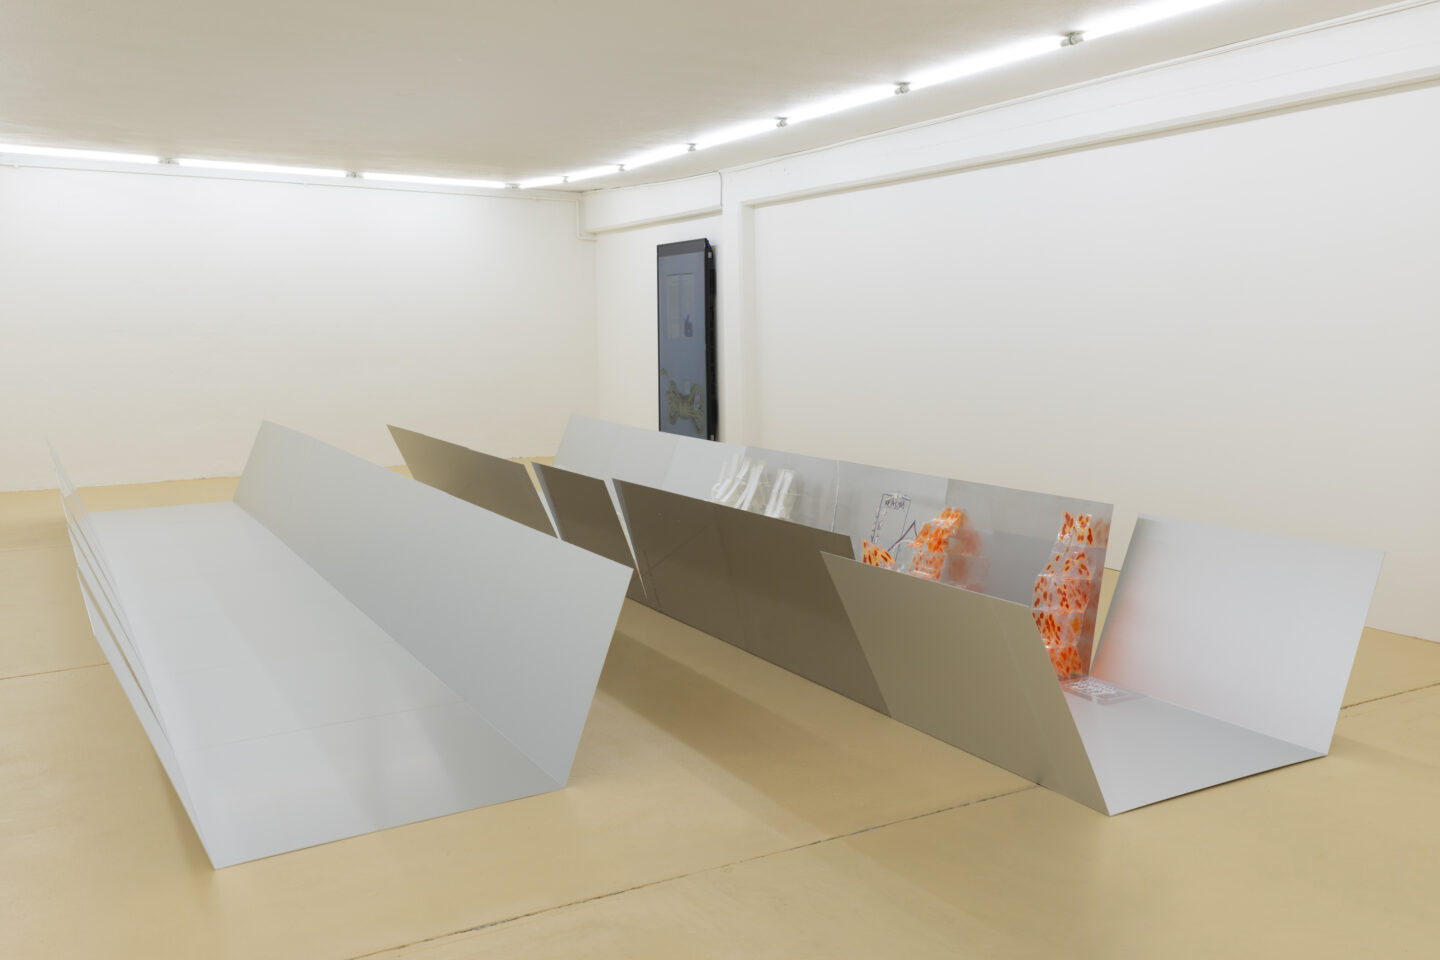 Exhibition View Elza Sile ⩙ {F_x Office} Soloshow «Hunter's Fallacy» at unanimous consent, Zurich, 2020 / Photo: Romain Mader / Courtesy: the artist and unanimous consent